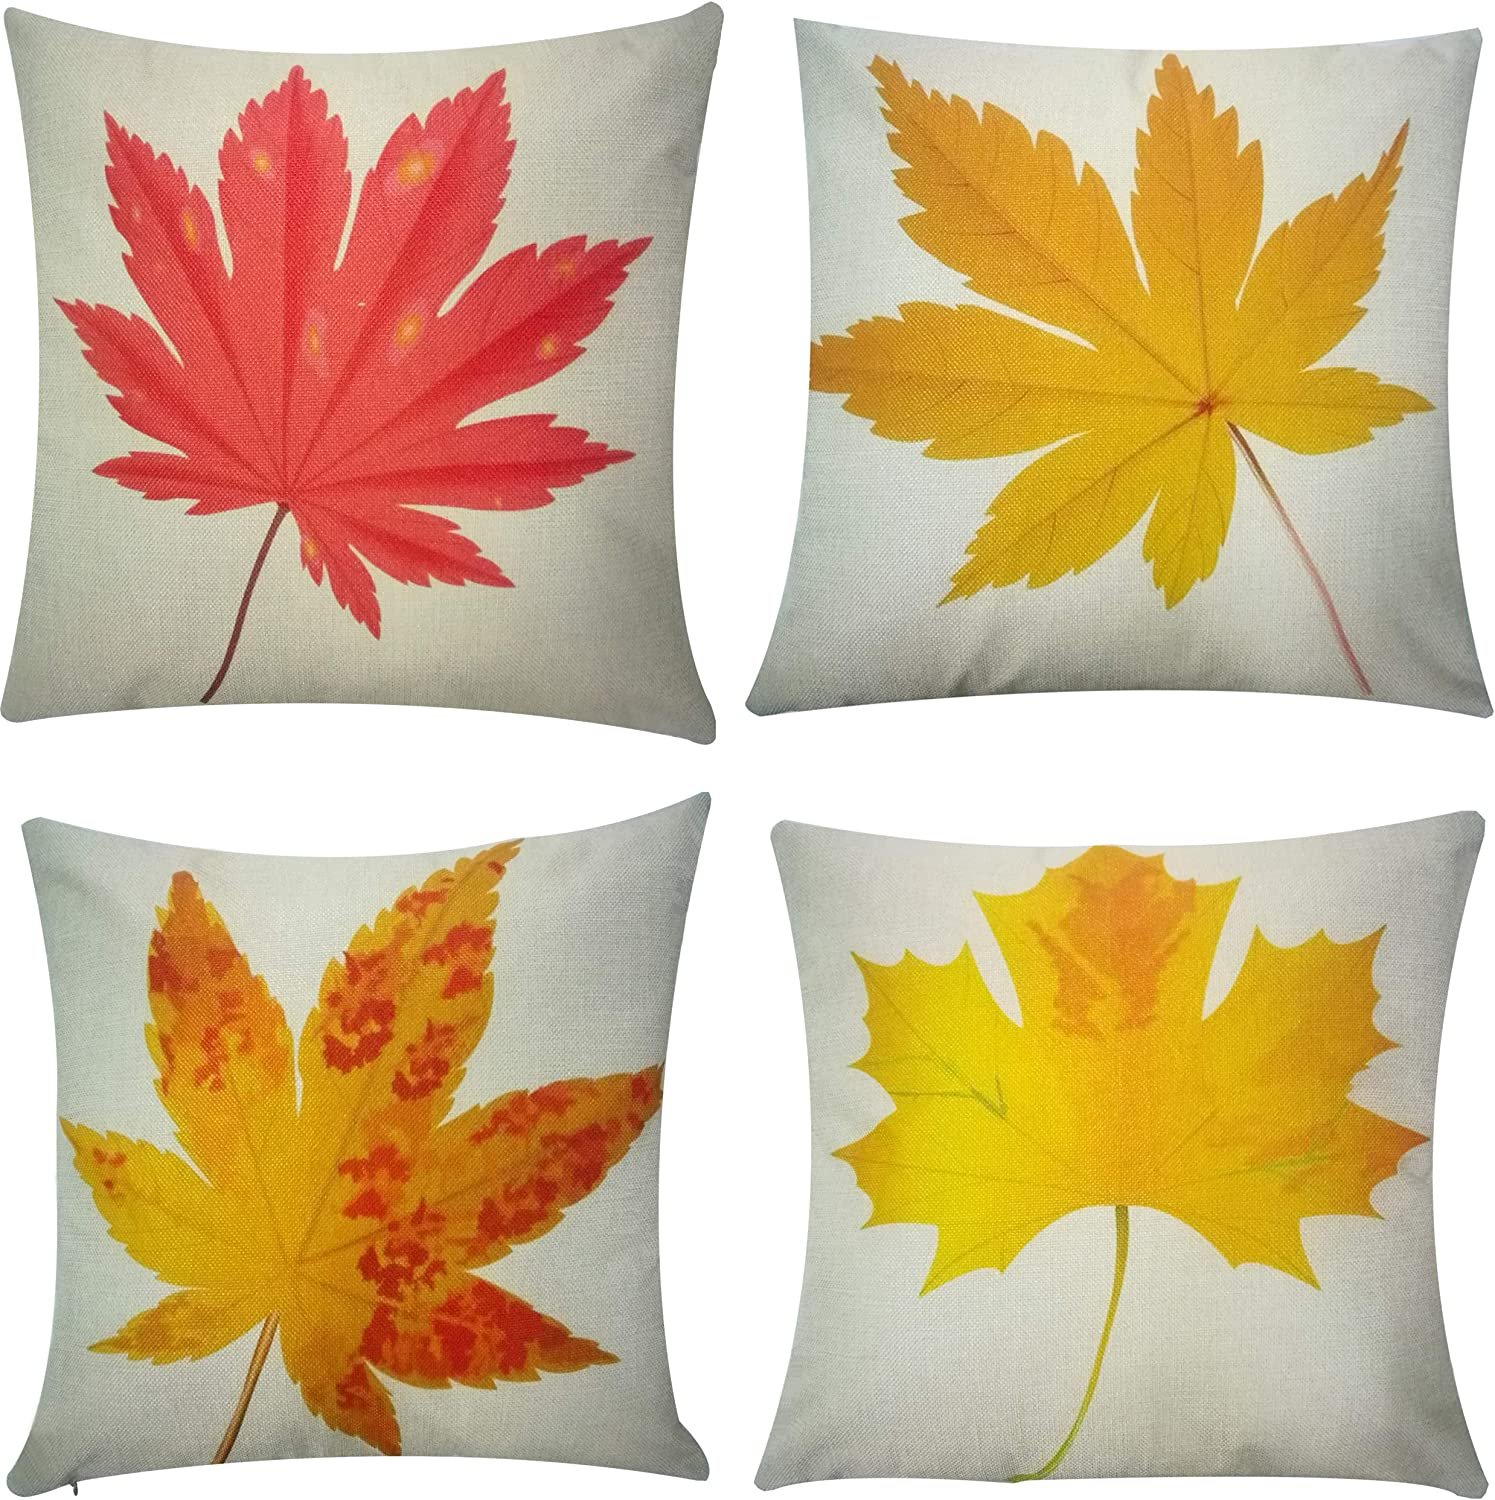 HOSL P45 Cotton Linen Thow Pillow Case Decorative Cushion Cover